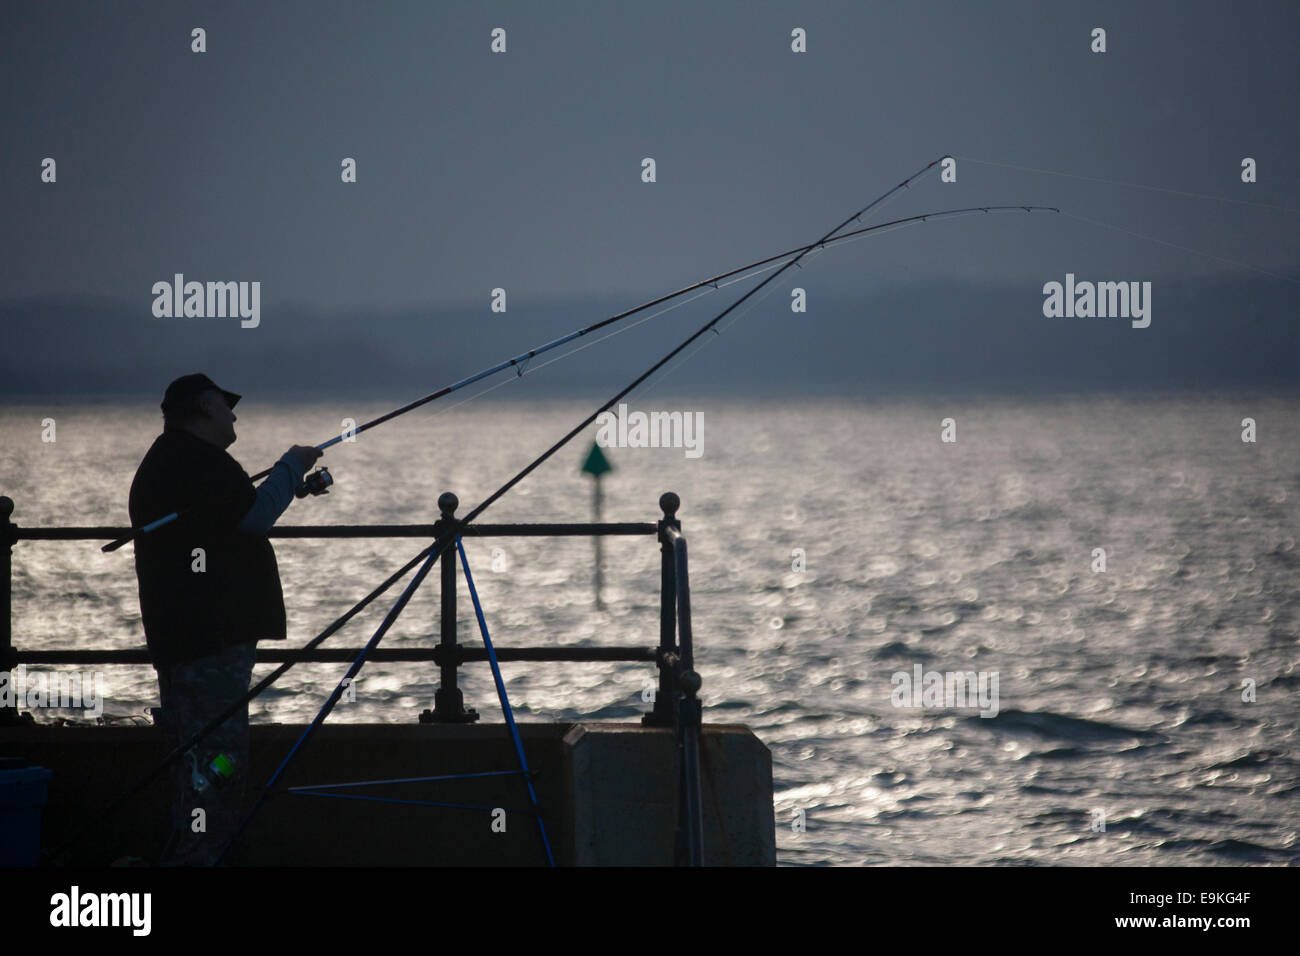 Man, fishing, seafront, silhouette, rods, reel, mirror lens, sea, sparkle, backlit, Cowes, Gurnard, Isle of Wight, - Stock Image